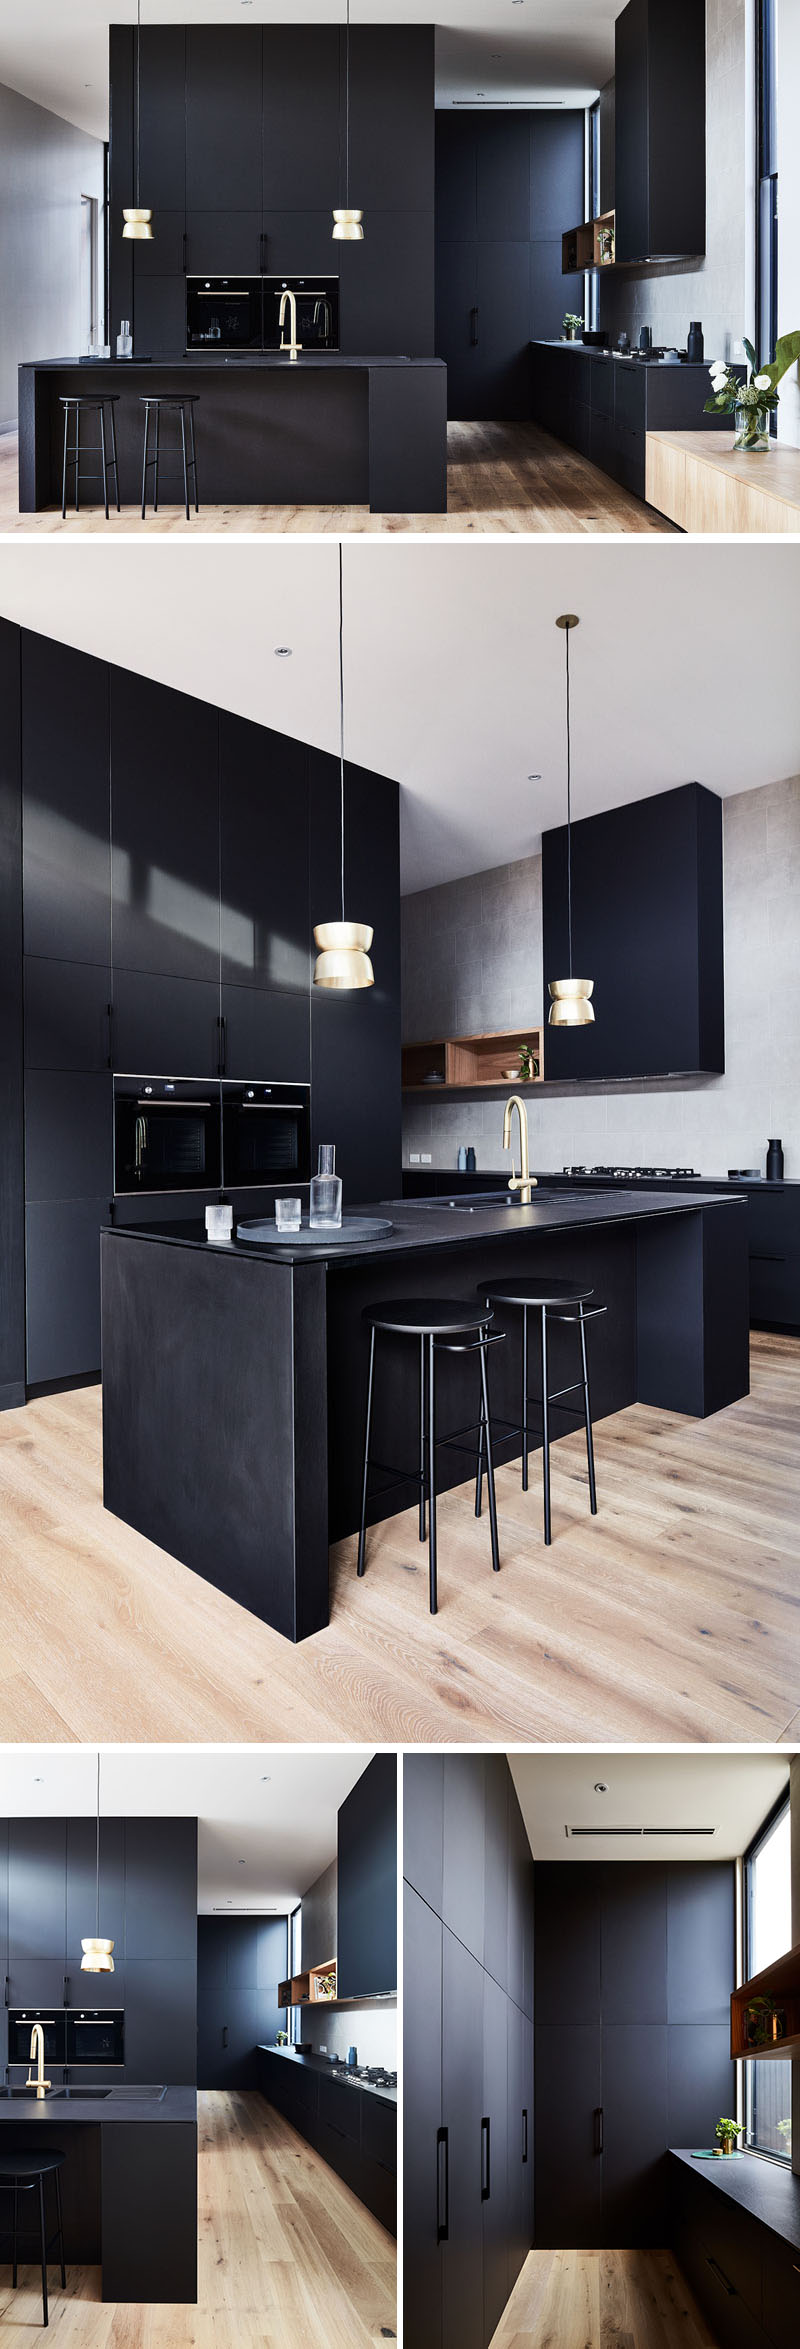 LifeSpaces Group, a building company, have worked together with Auhaus Architecture, to design and build a new house with a black kitchen.